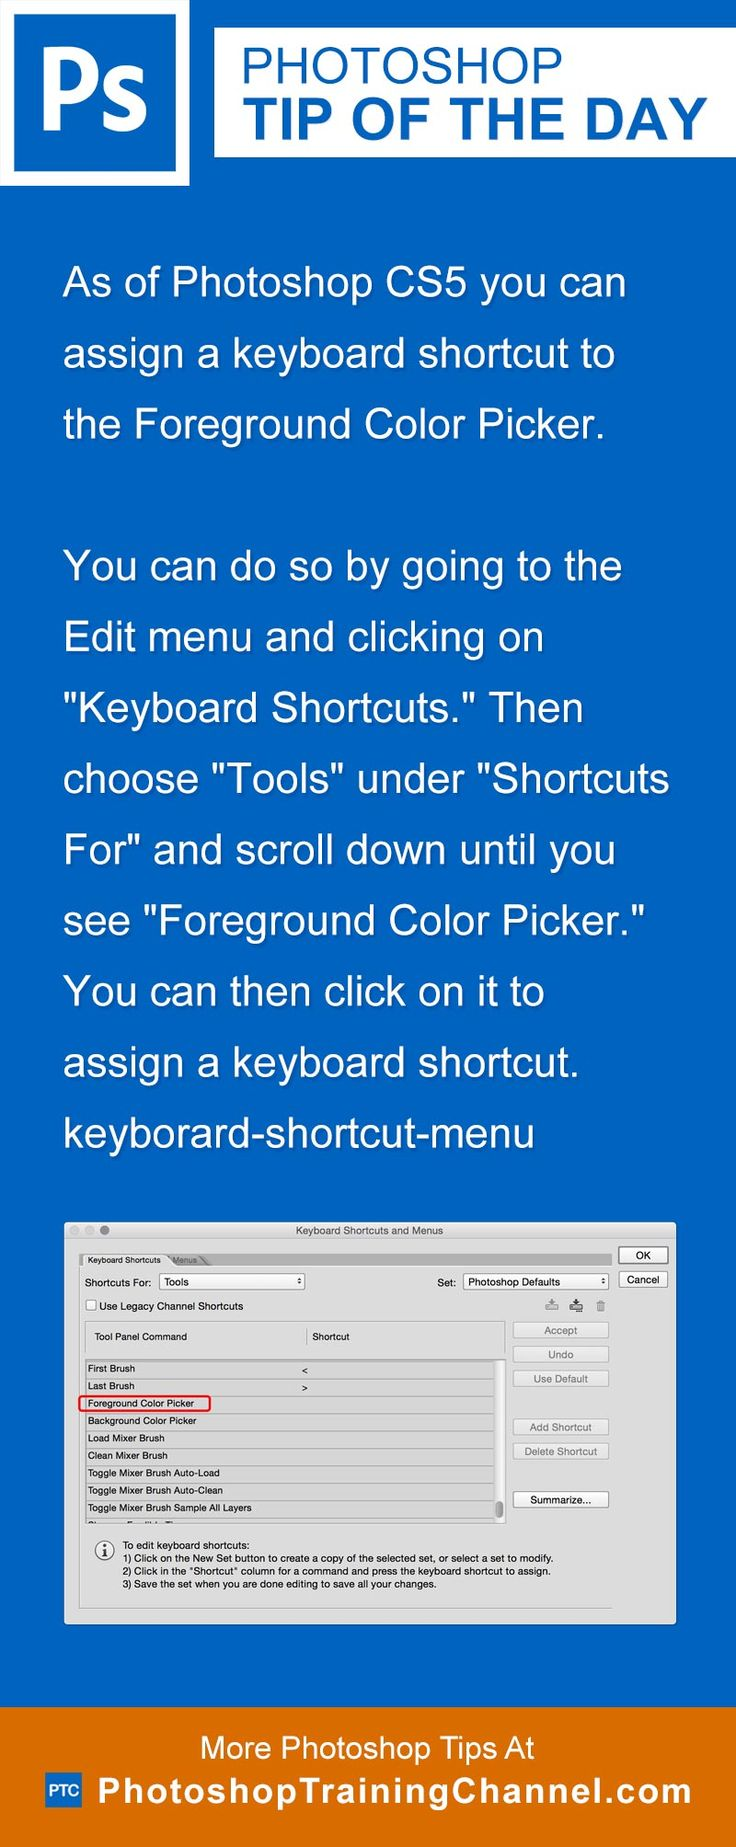 As Of Photoshop Cs5 You Can Assign A Keyboard Shortcut To The Foreground  Color Picker